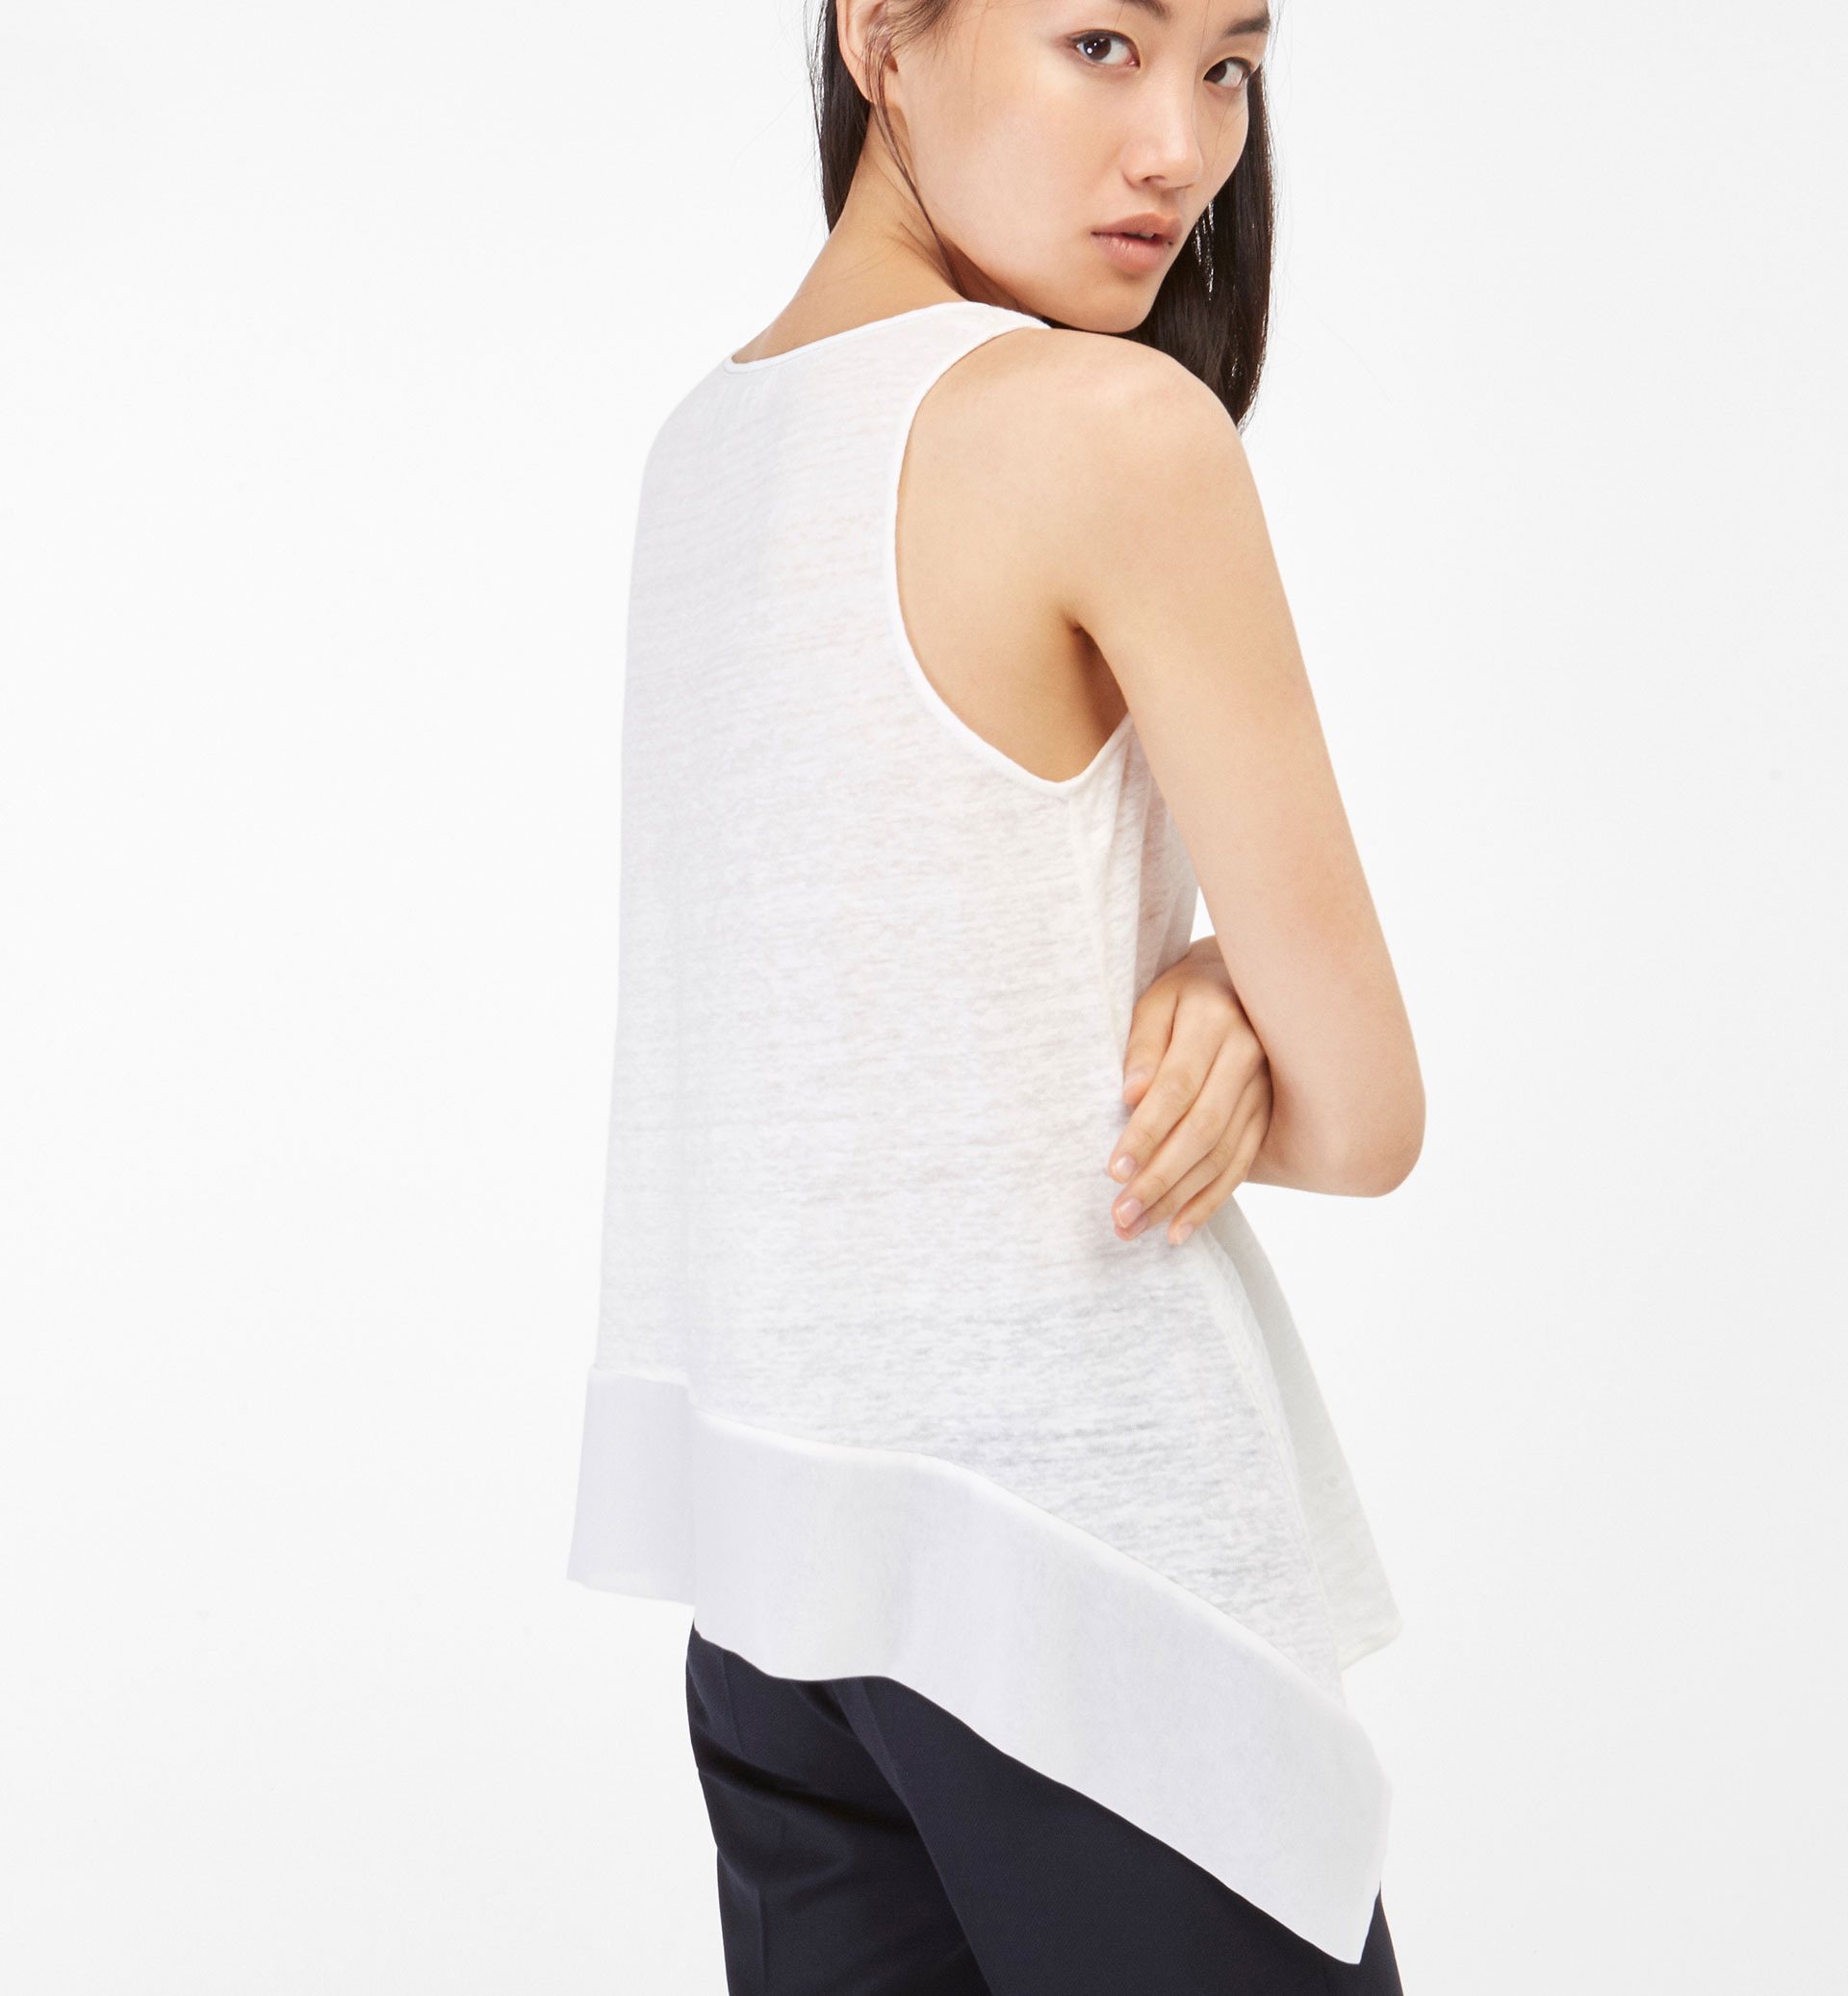 T-SHIRT WITH POINTED SIDES